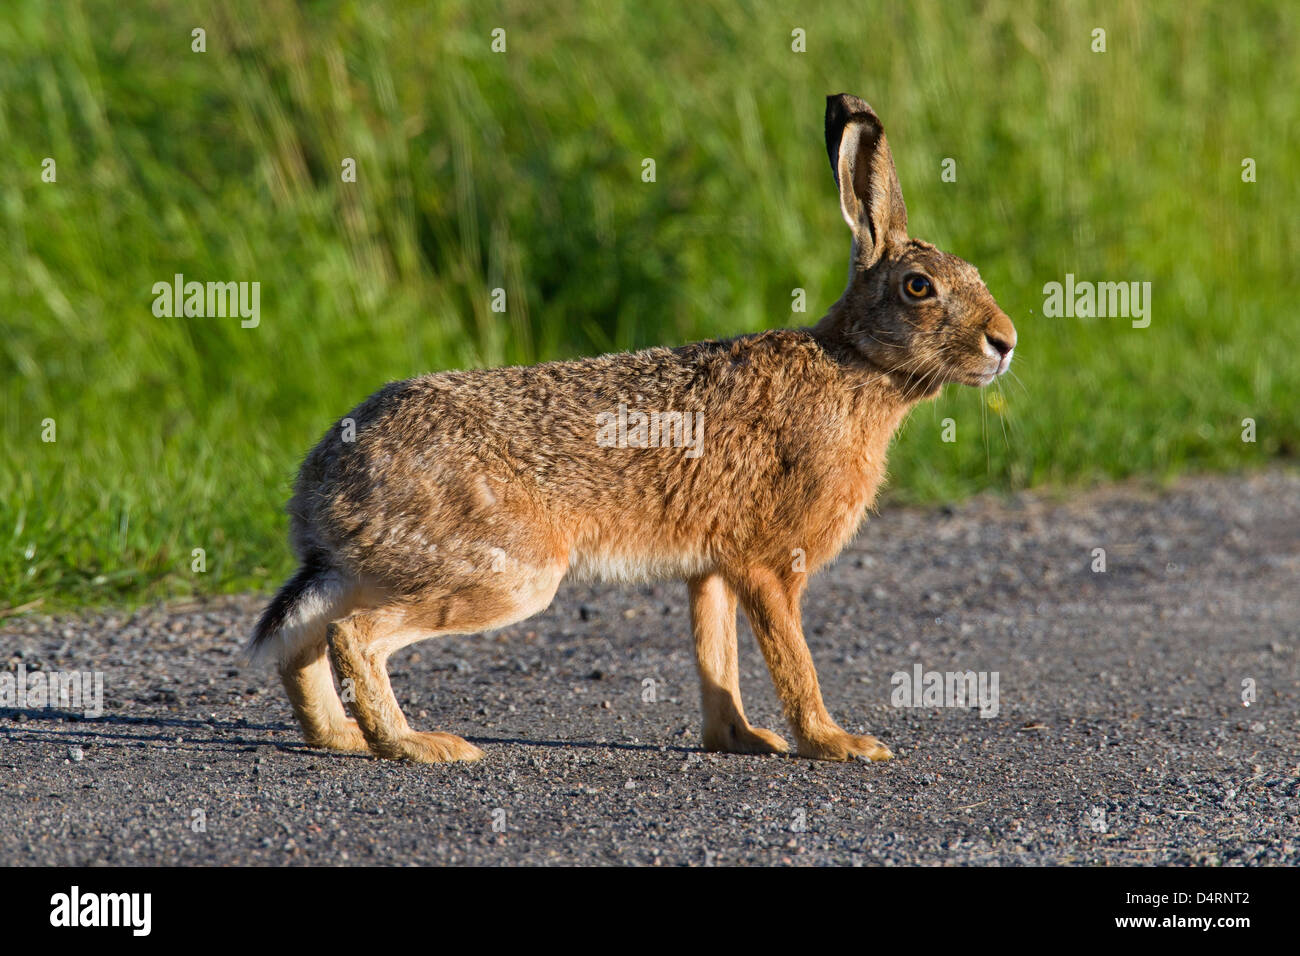 European Brown Hare (Lepus europaeus) crossing road - Stock Image